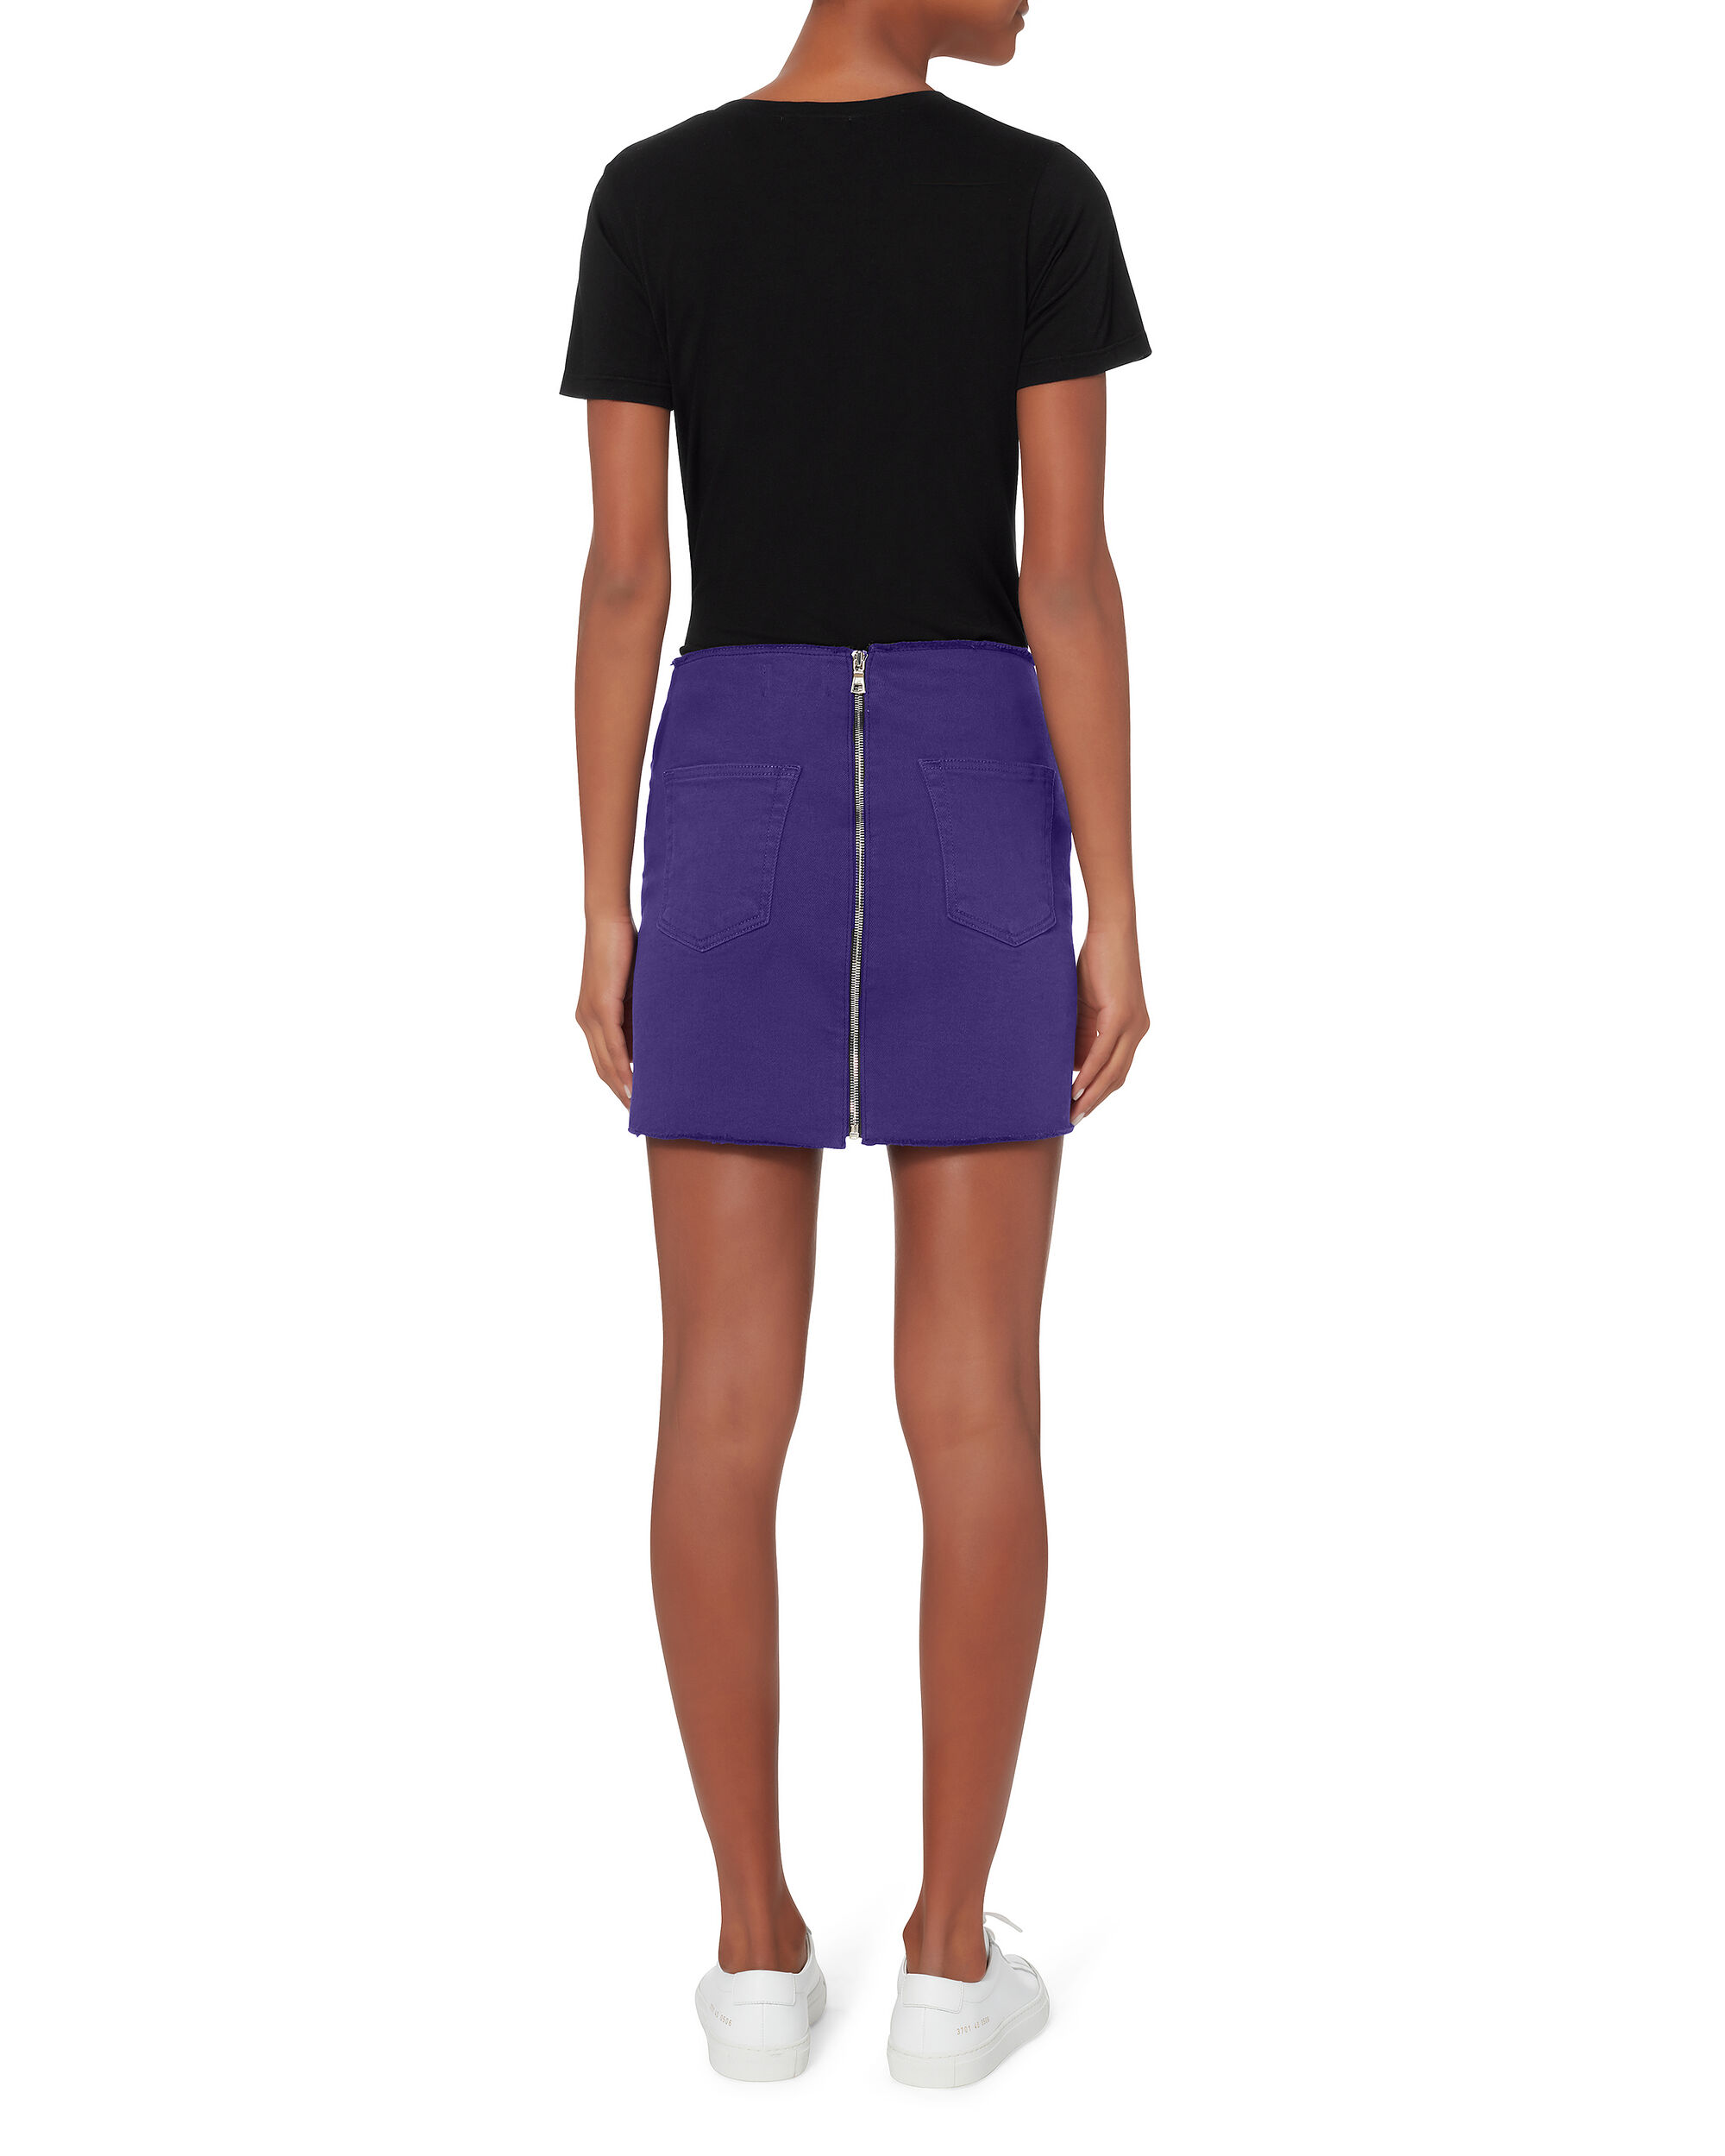 Zip Detail Purple Mini Skirt, PURPLE-DRK, hi-res